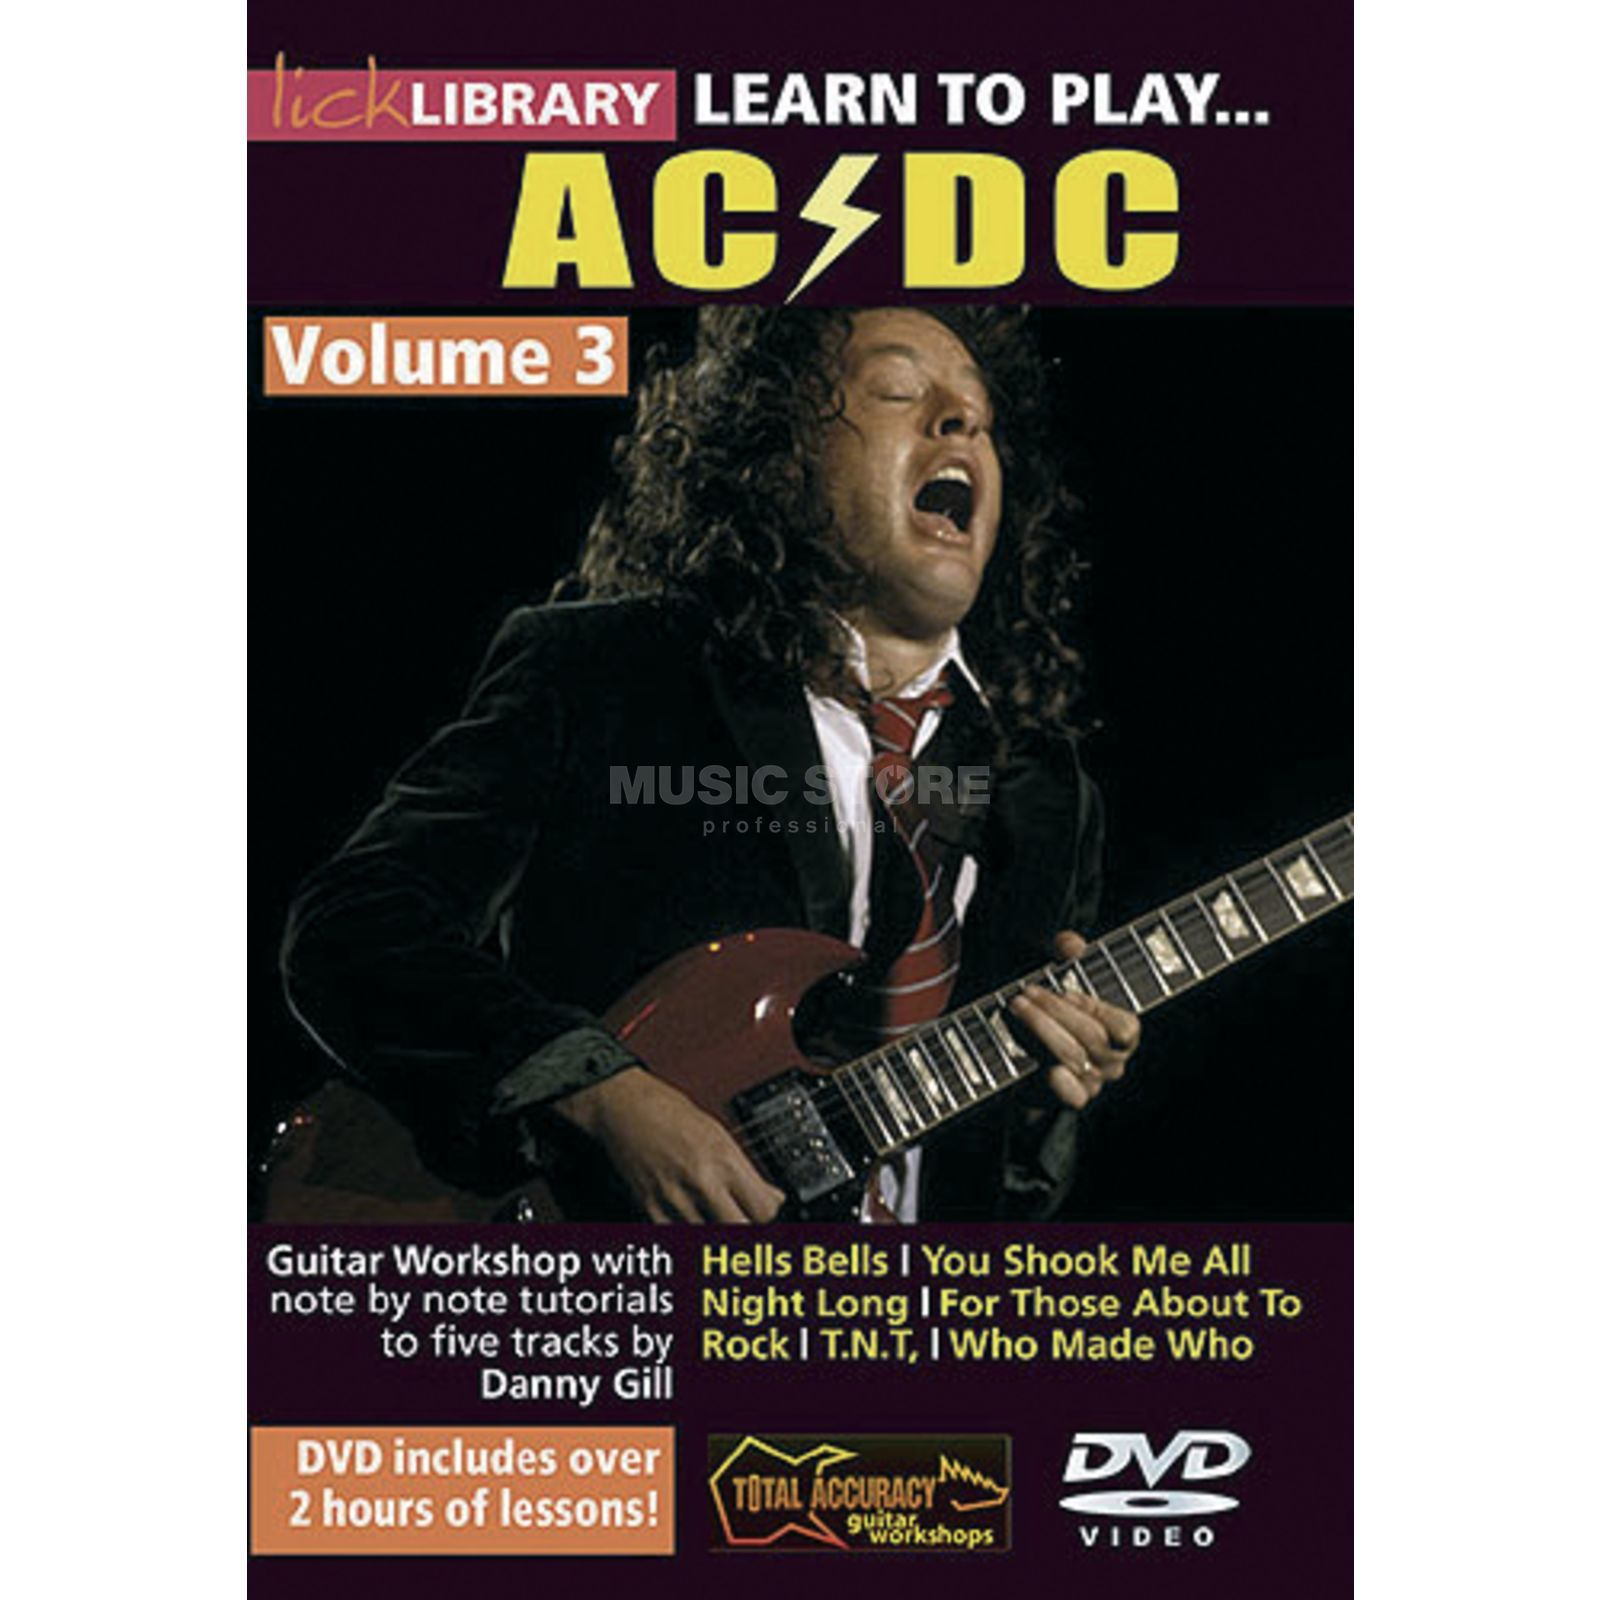 Roadrock International Lick Library: Learn To Play AC/DC 3 DVD Produktbild